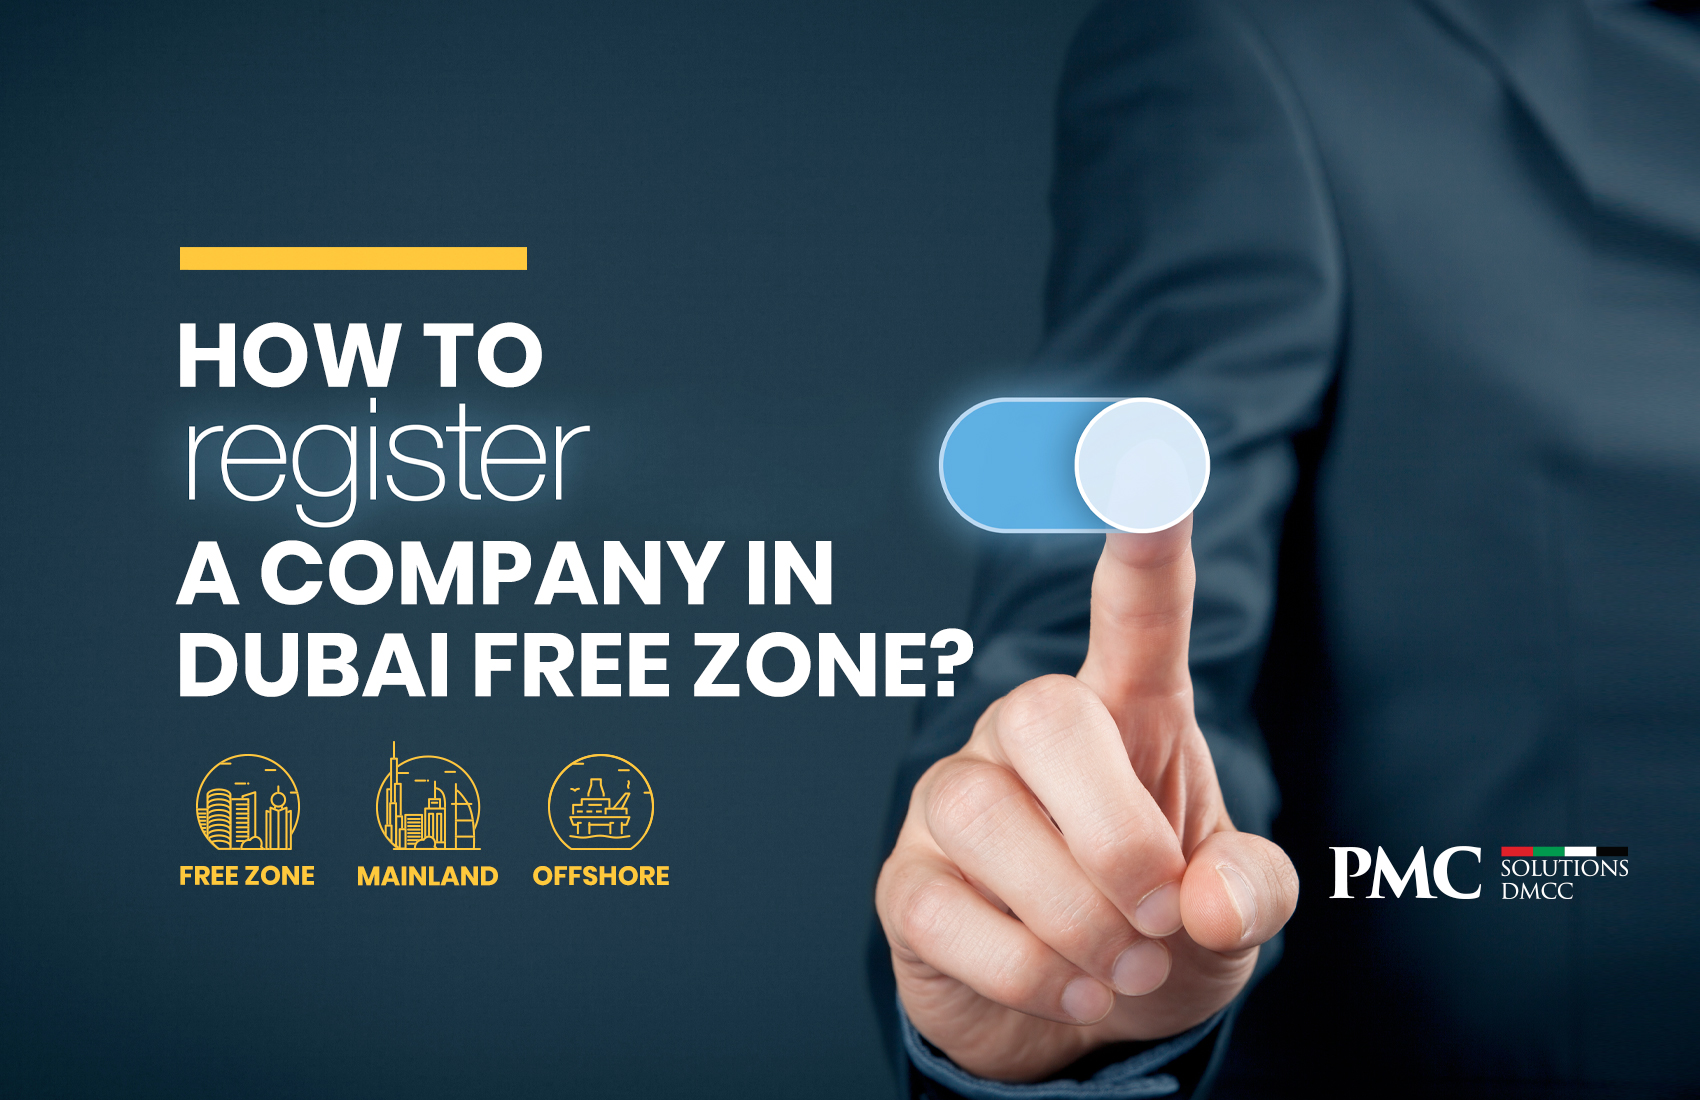 How To Register A Company in Dubai Free zone